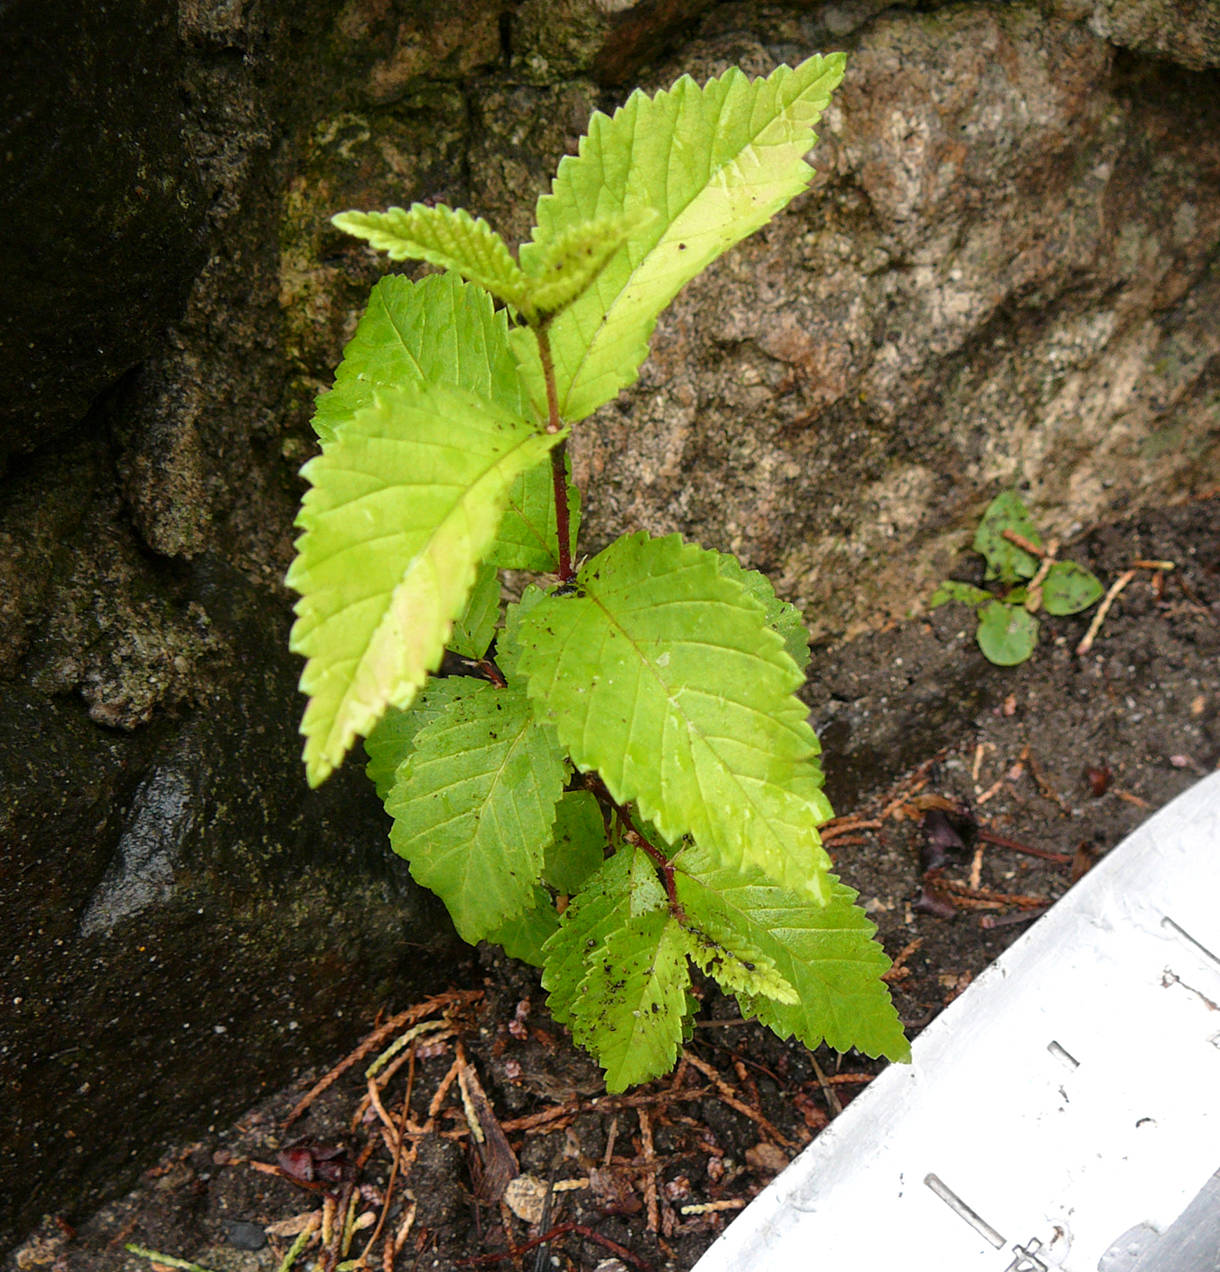 This Siberian elm seedling, growing between sidewalk and a rock wall, already had a taproot longer than the four inches of top growth. It is essential to recognize the seedlings and remove them immediately.                                -Image: Gwen Steele